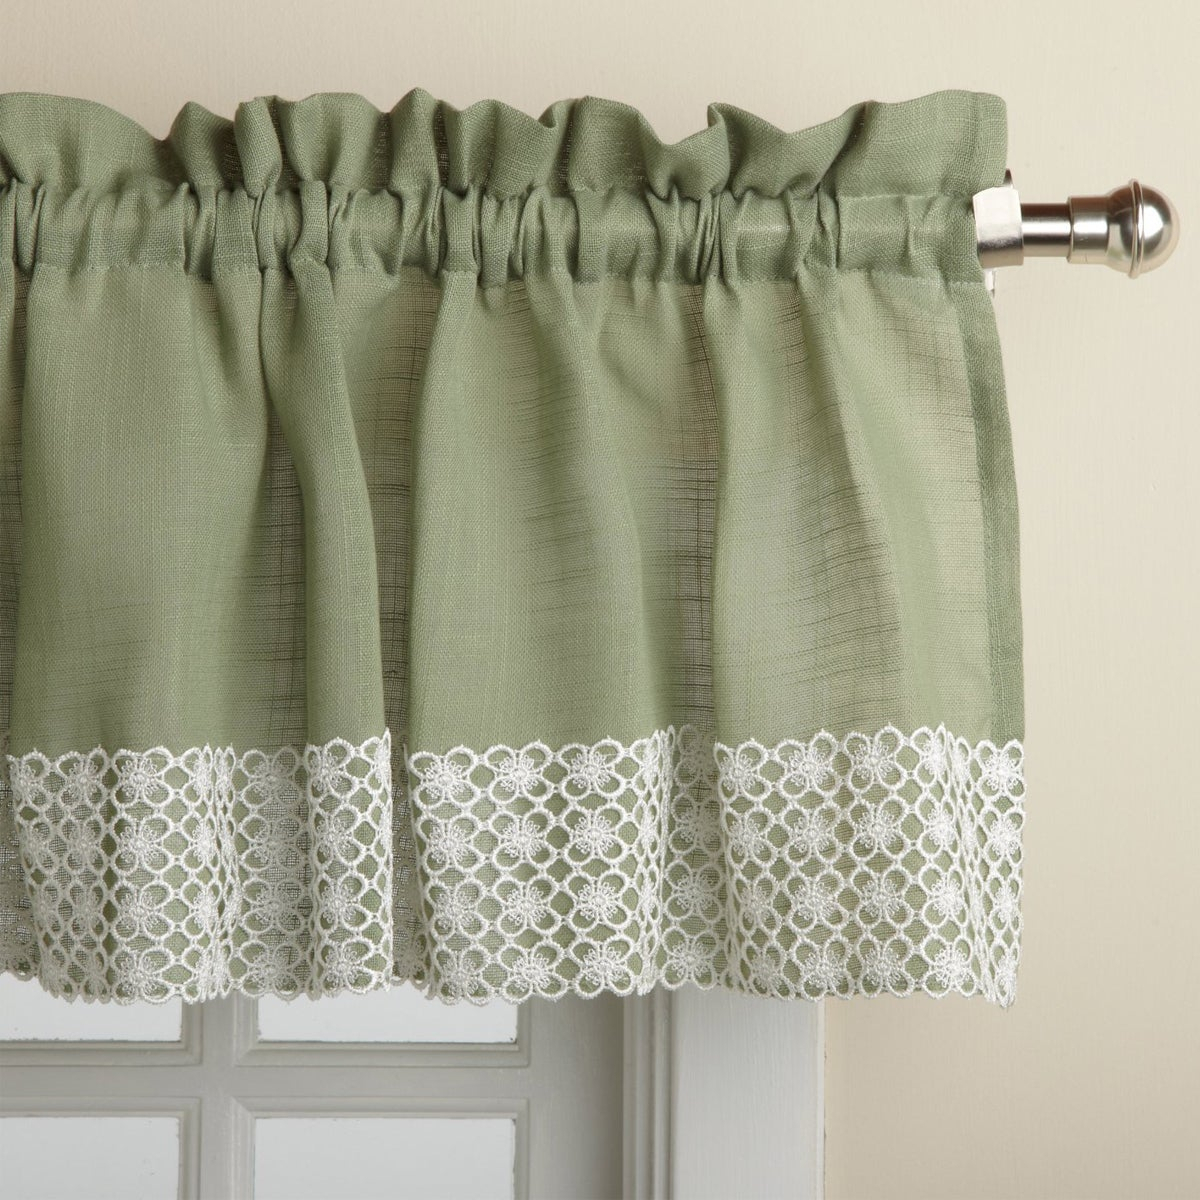 Sage Country Style Curtain Parts With White Daisy Lace Accent (separates Tiers, Swags And Valances) In French Vanilla Country Style Curtain Parts With White Daisy Lace Accent (View 4 of 20)